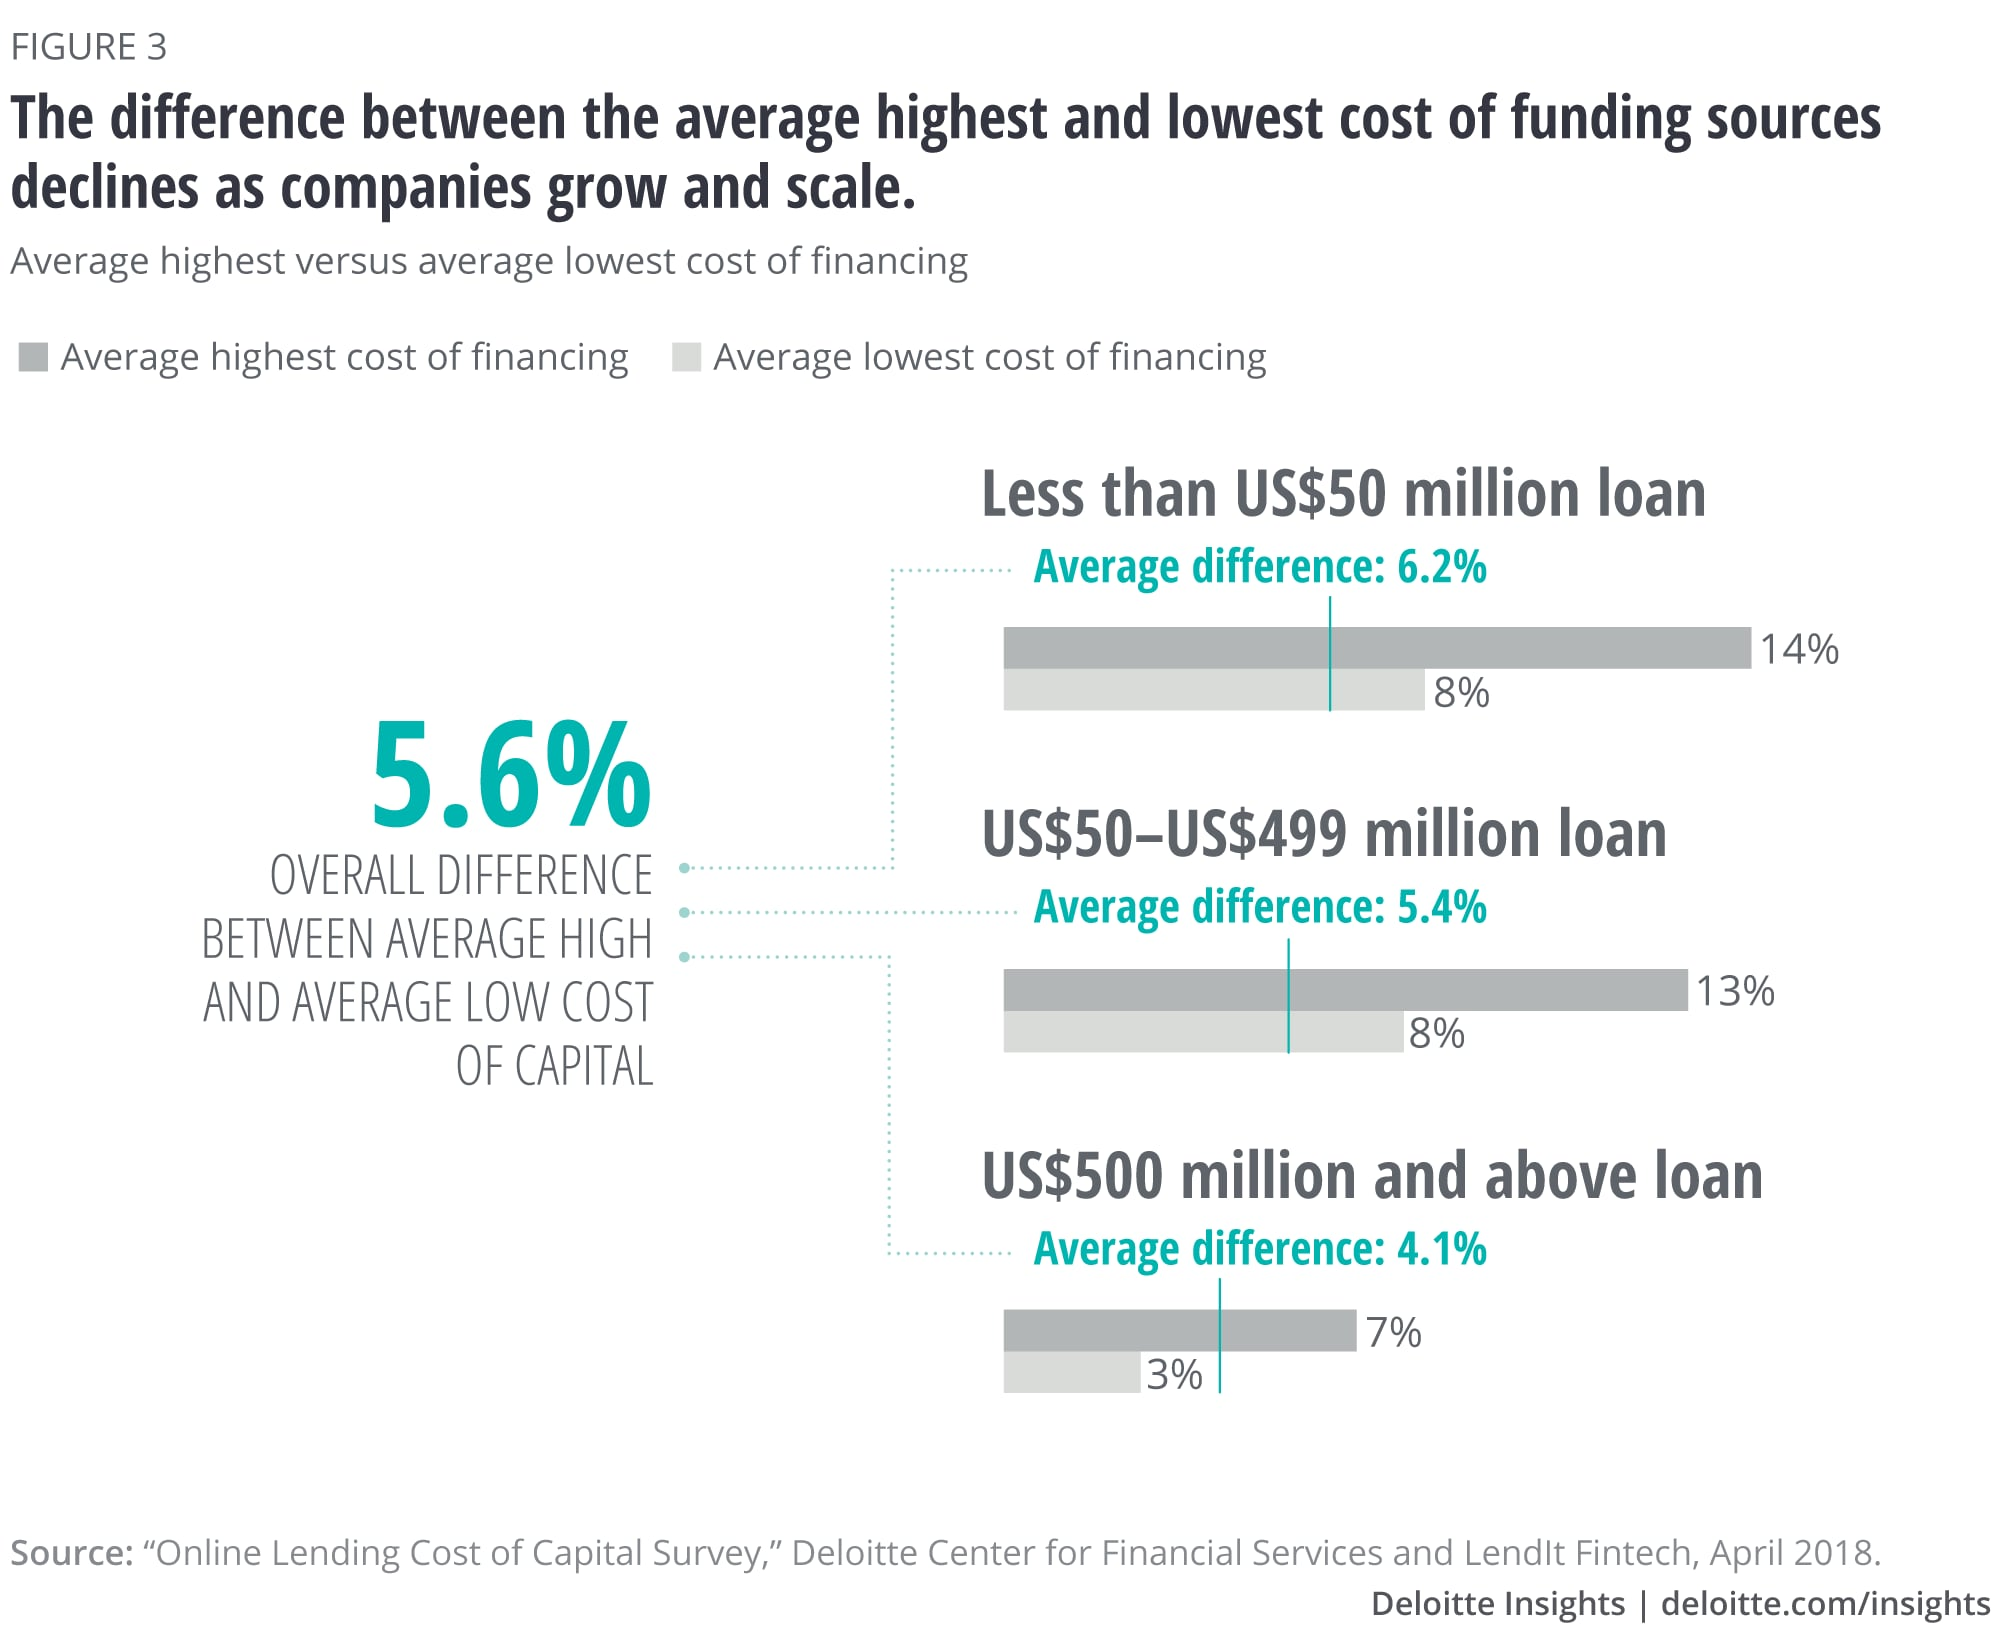 The difference between the average highest and lowest cost of funding sources declines as companies grow and scale